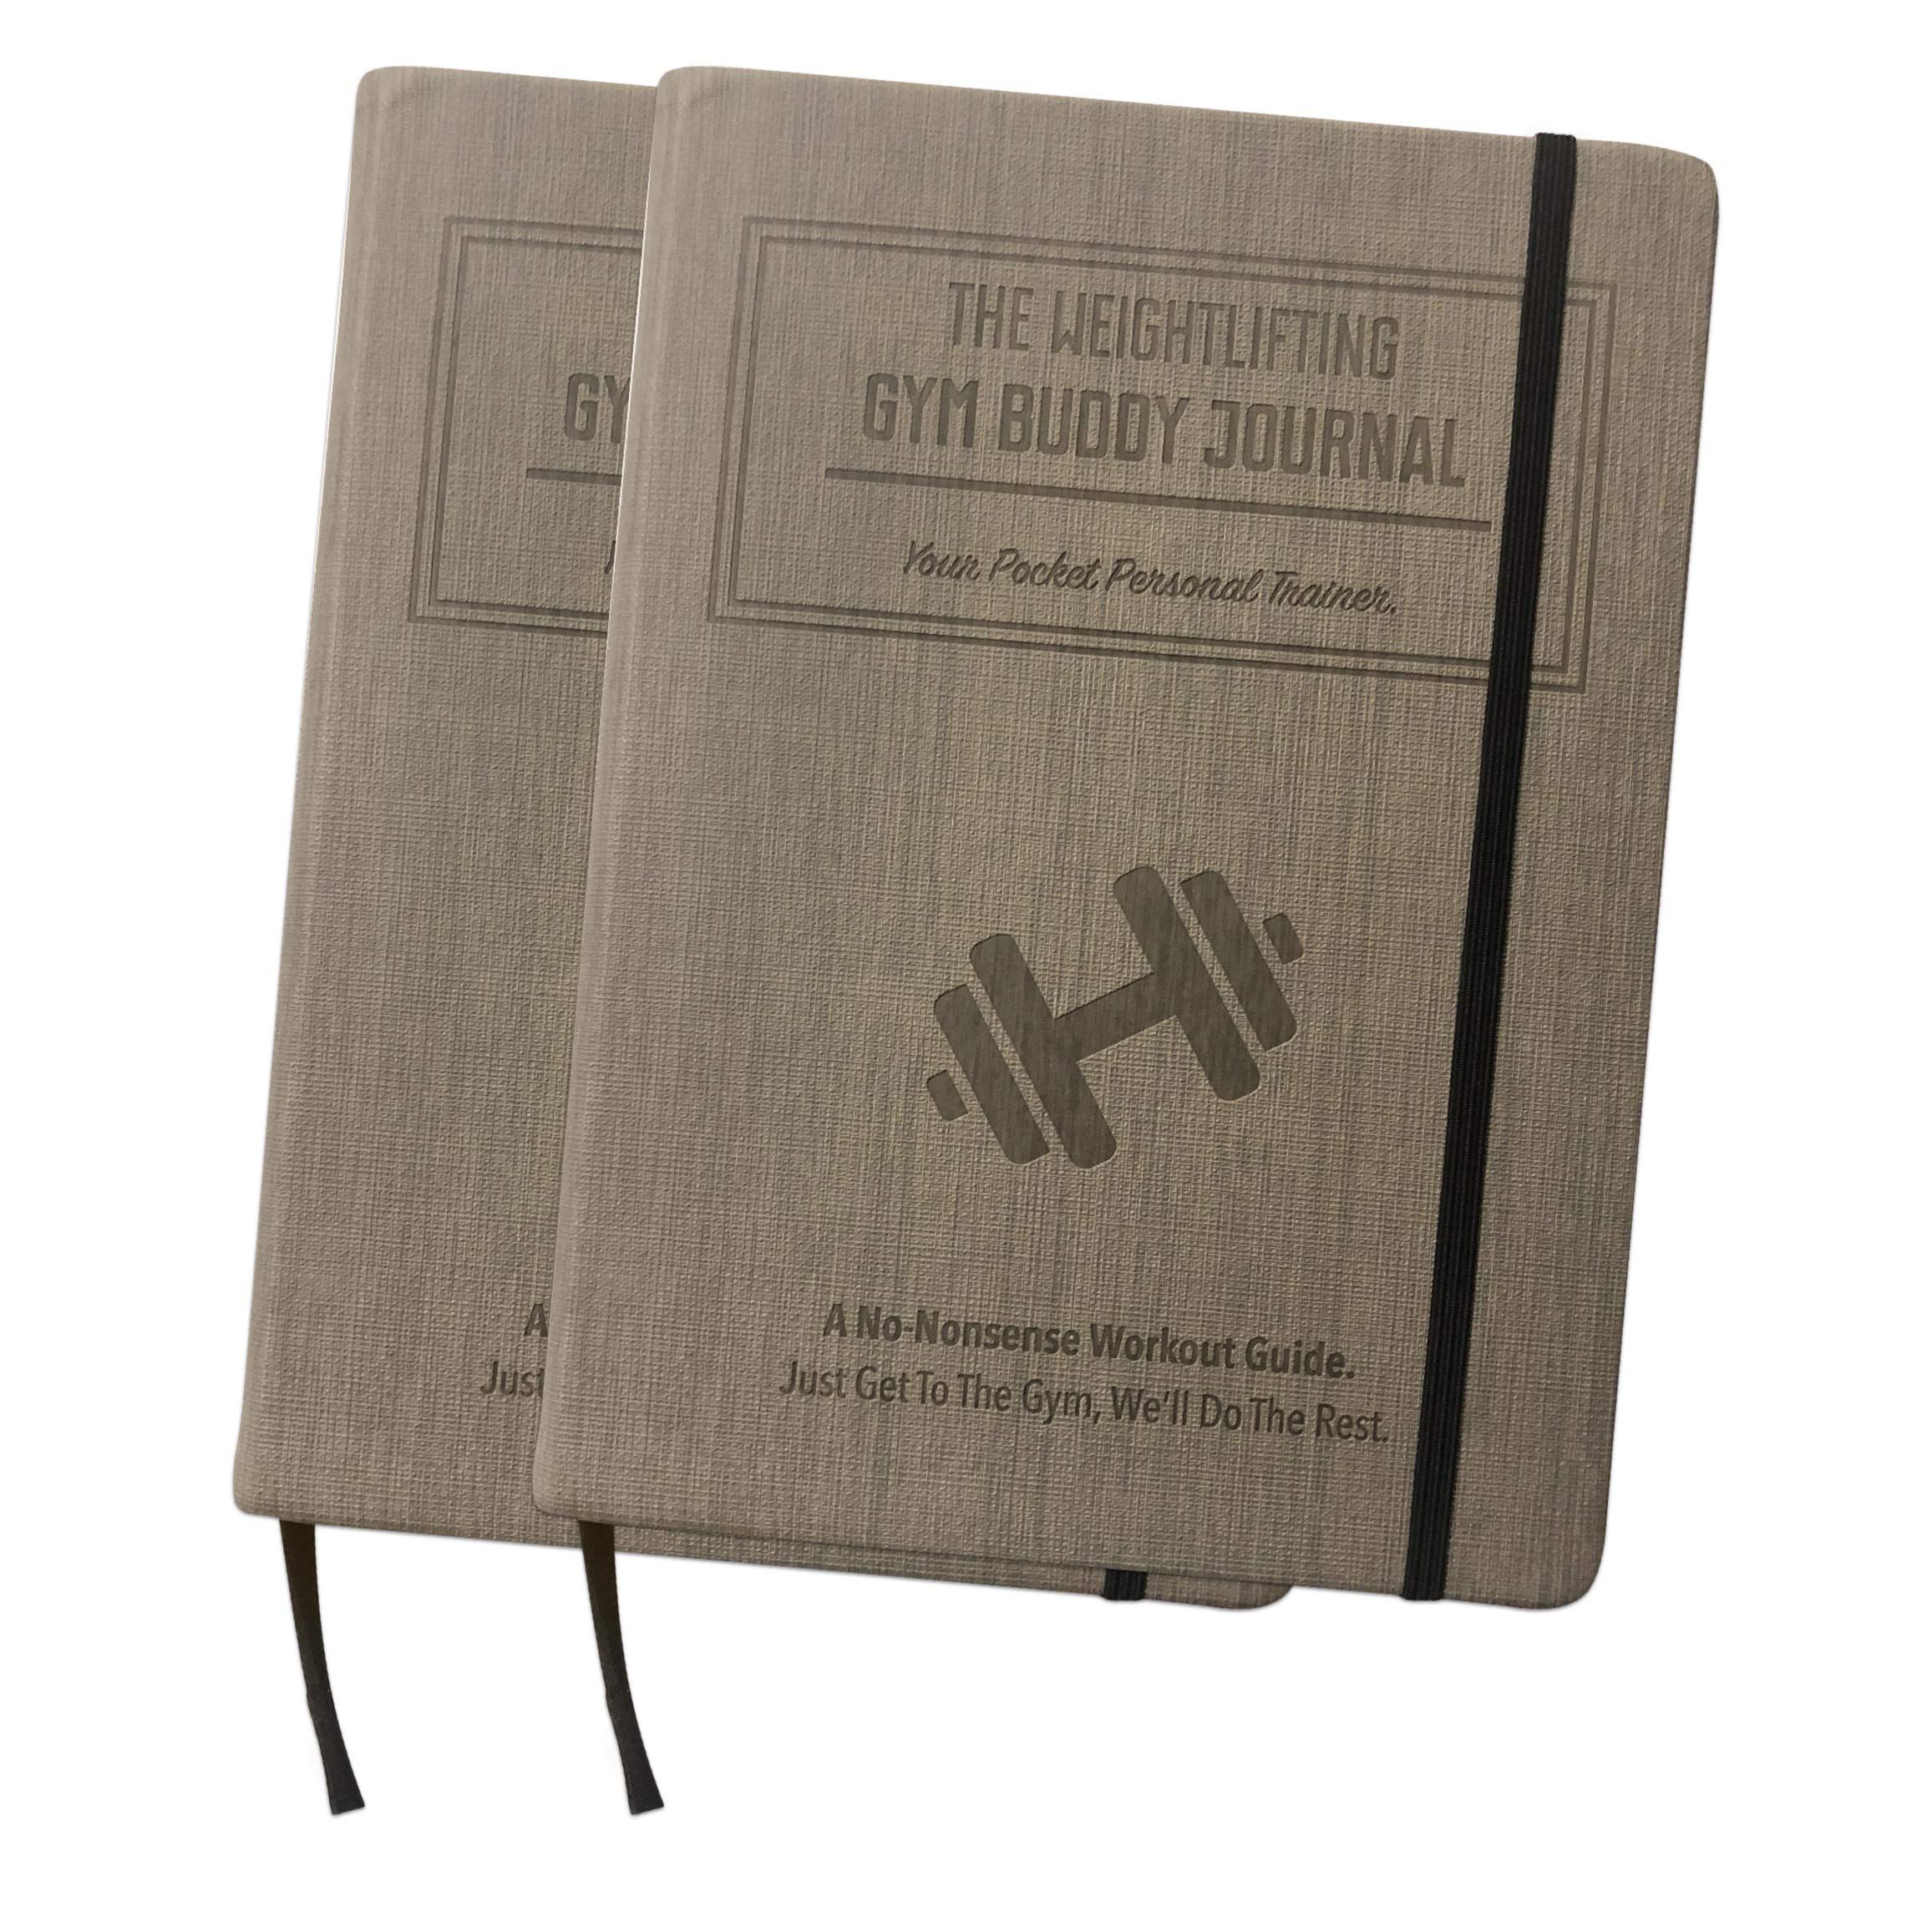 Habit Nest Bundle - 2X The Weightlifting Gym Buddy Journal (Gray). A 12-Week Personal Training Program in A Journal. A 12-Week Workout and Exercise Journal/Log. Your Ultimate Fitness Planner.